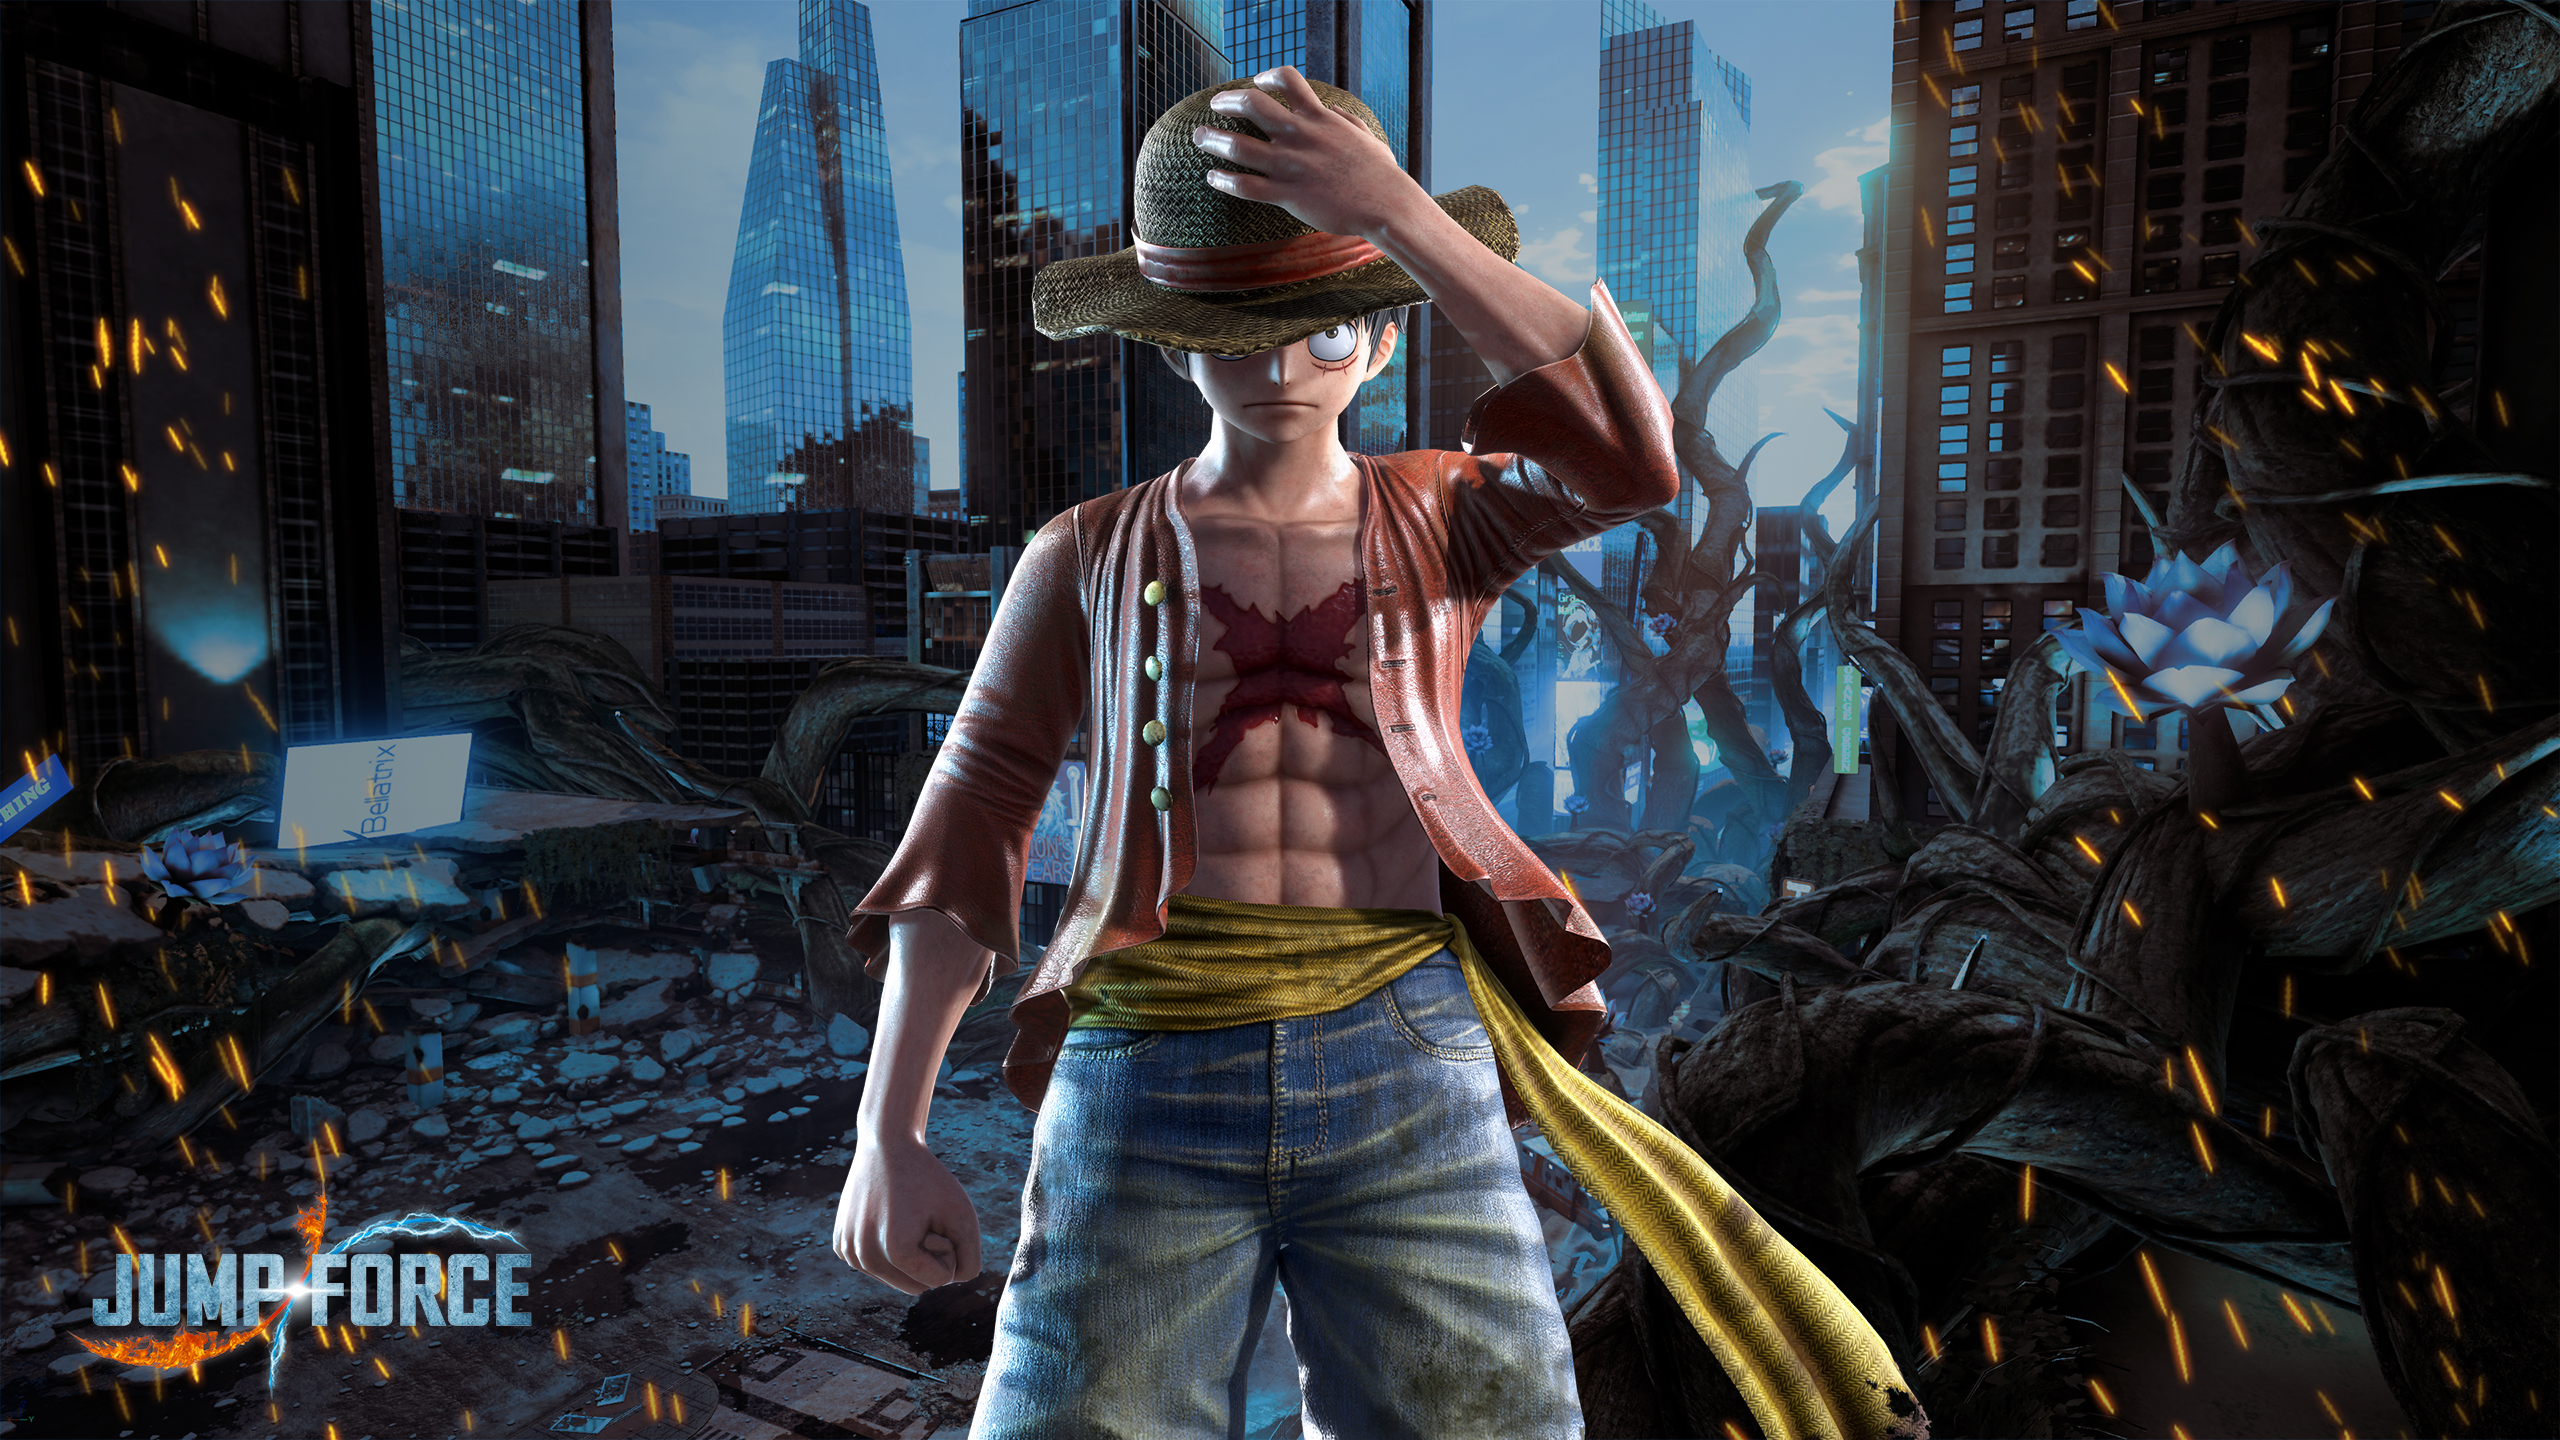 Iphone Se Wallpaper Size Jump Force Luffy Wallpapers Cat With Monocle